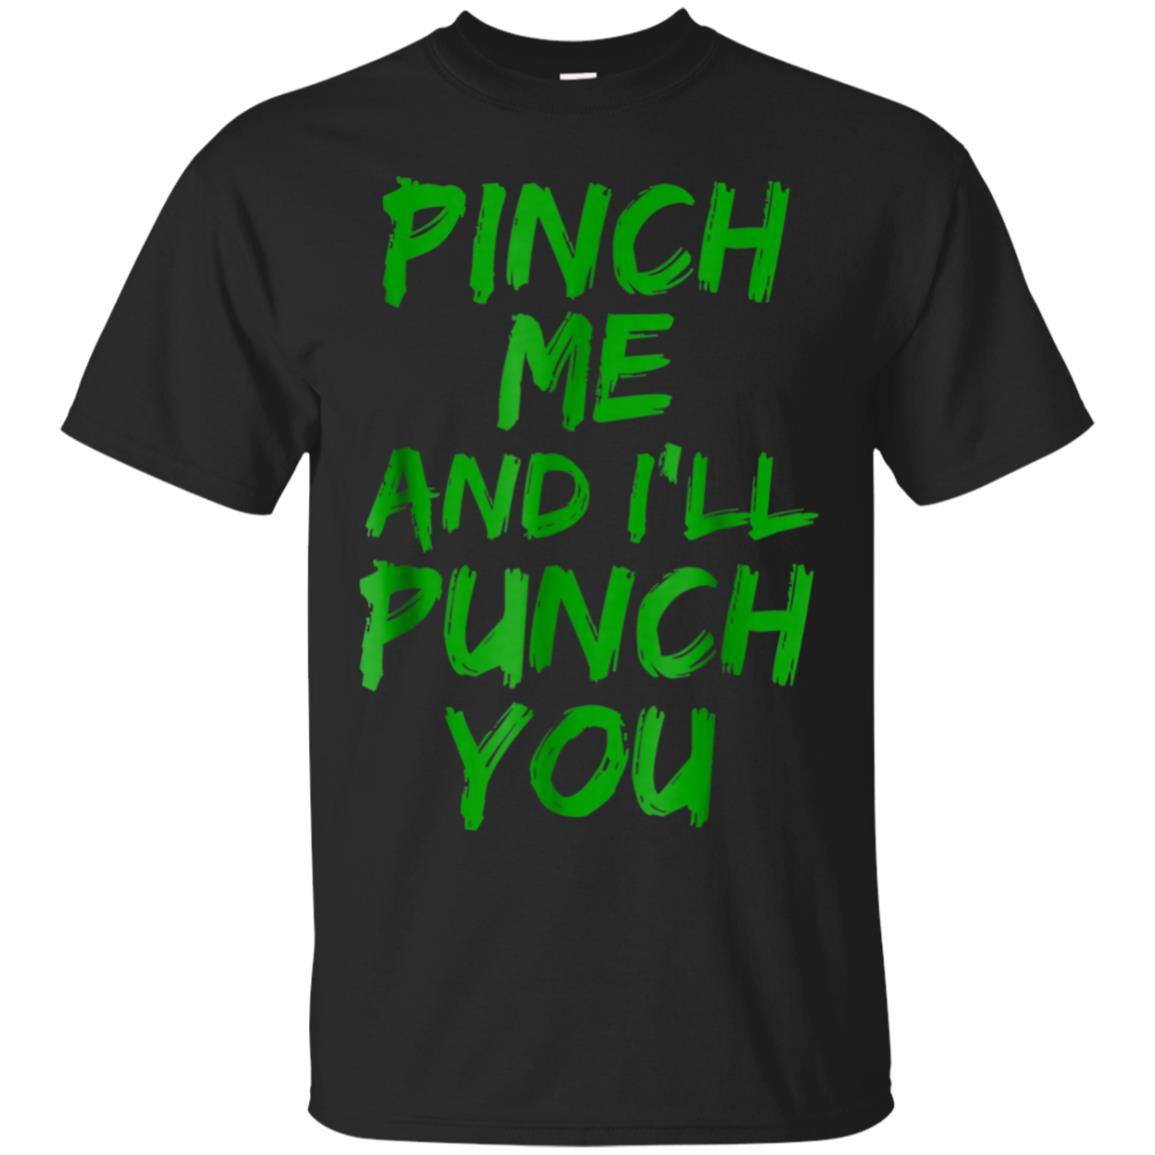 Pinch Me and I'll Punch You Shirt Funny Green St. Patrick's 99promocode